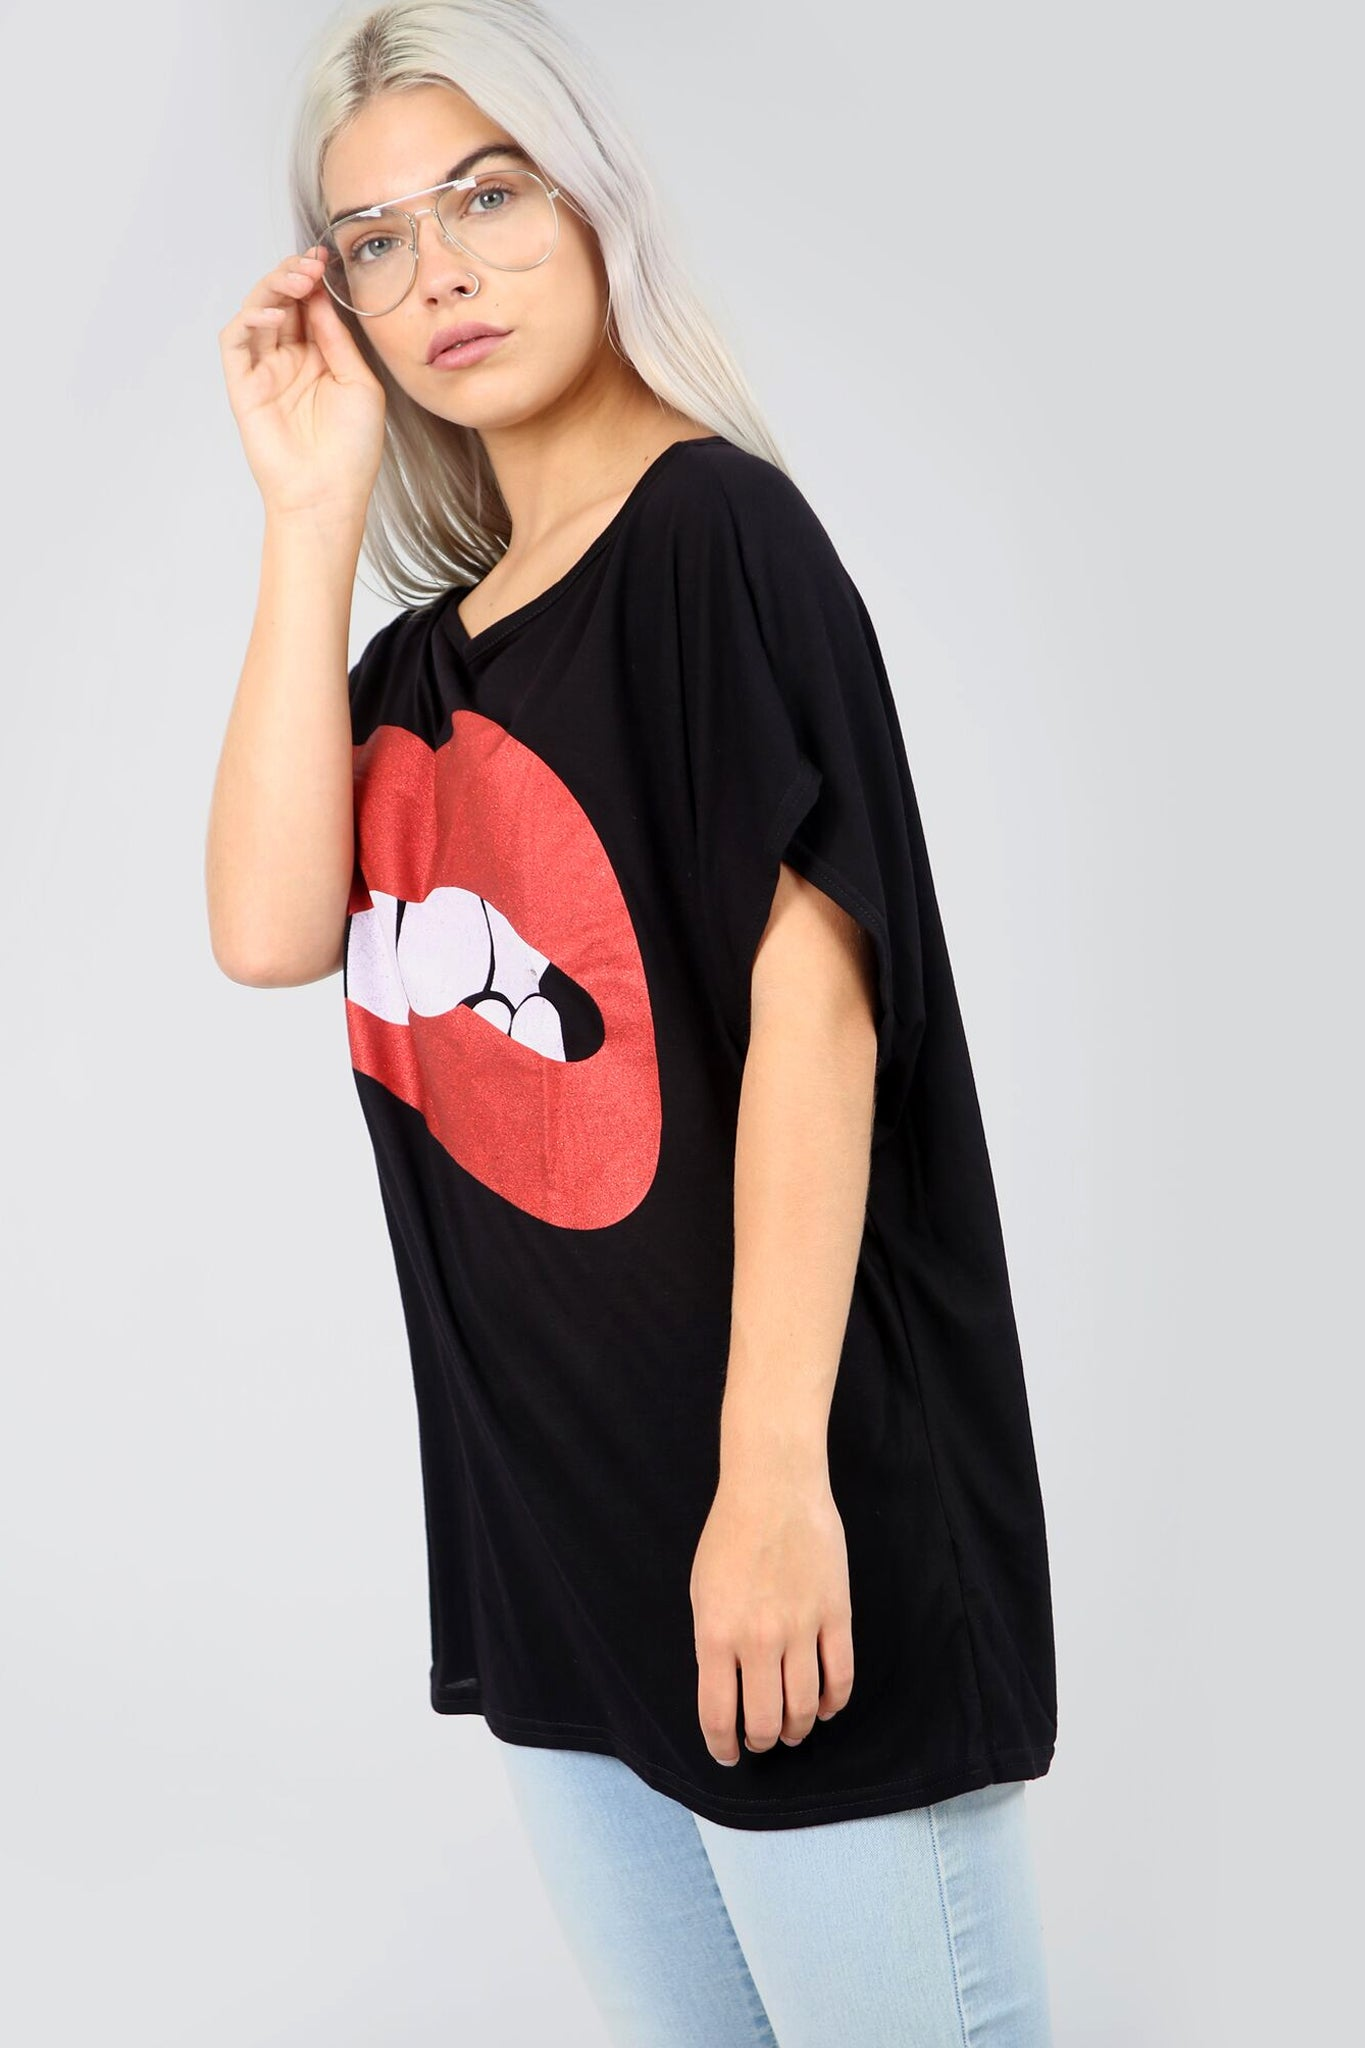 Graphic Print Lips Oversize Black Bat Wing Tshirt - bejealous-com